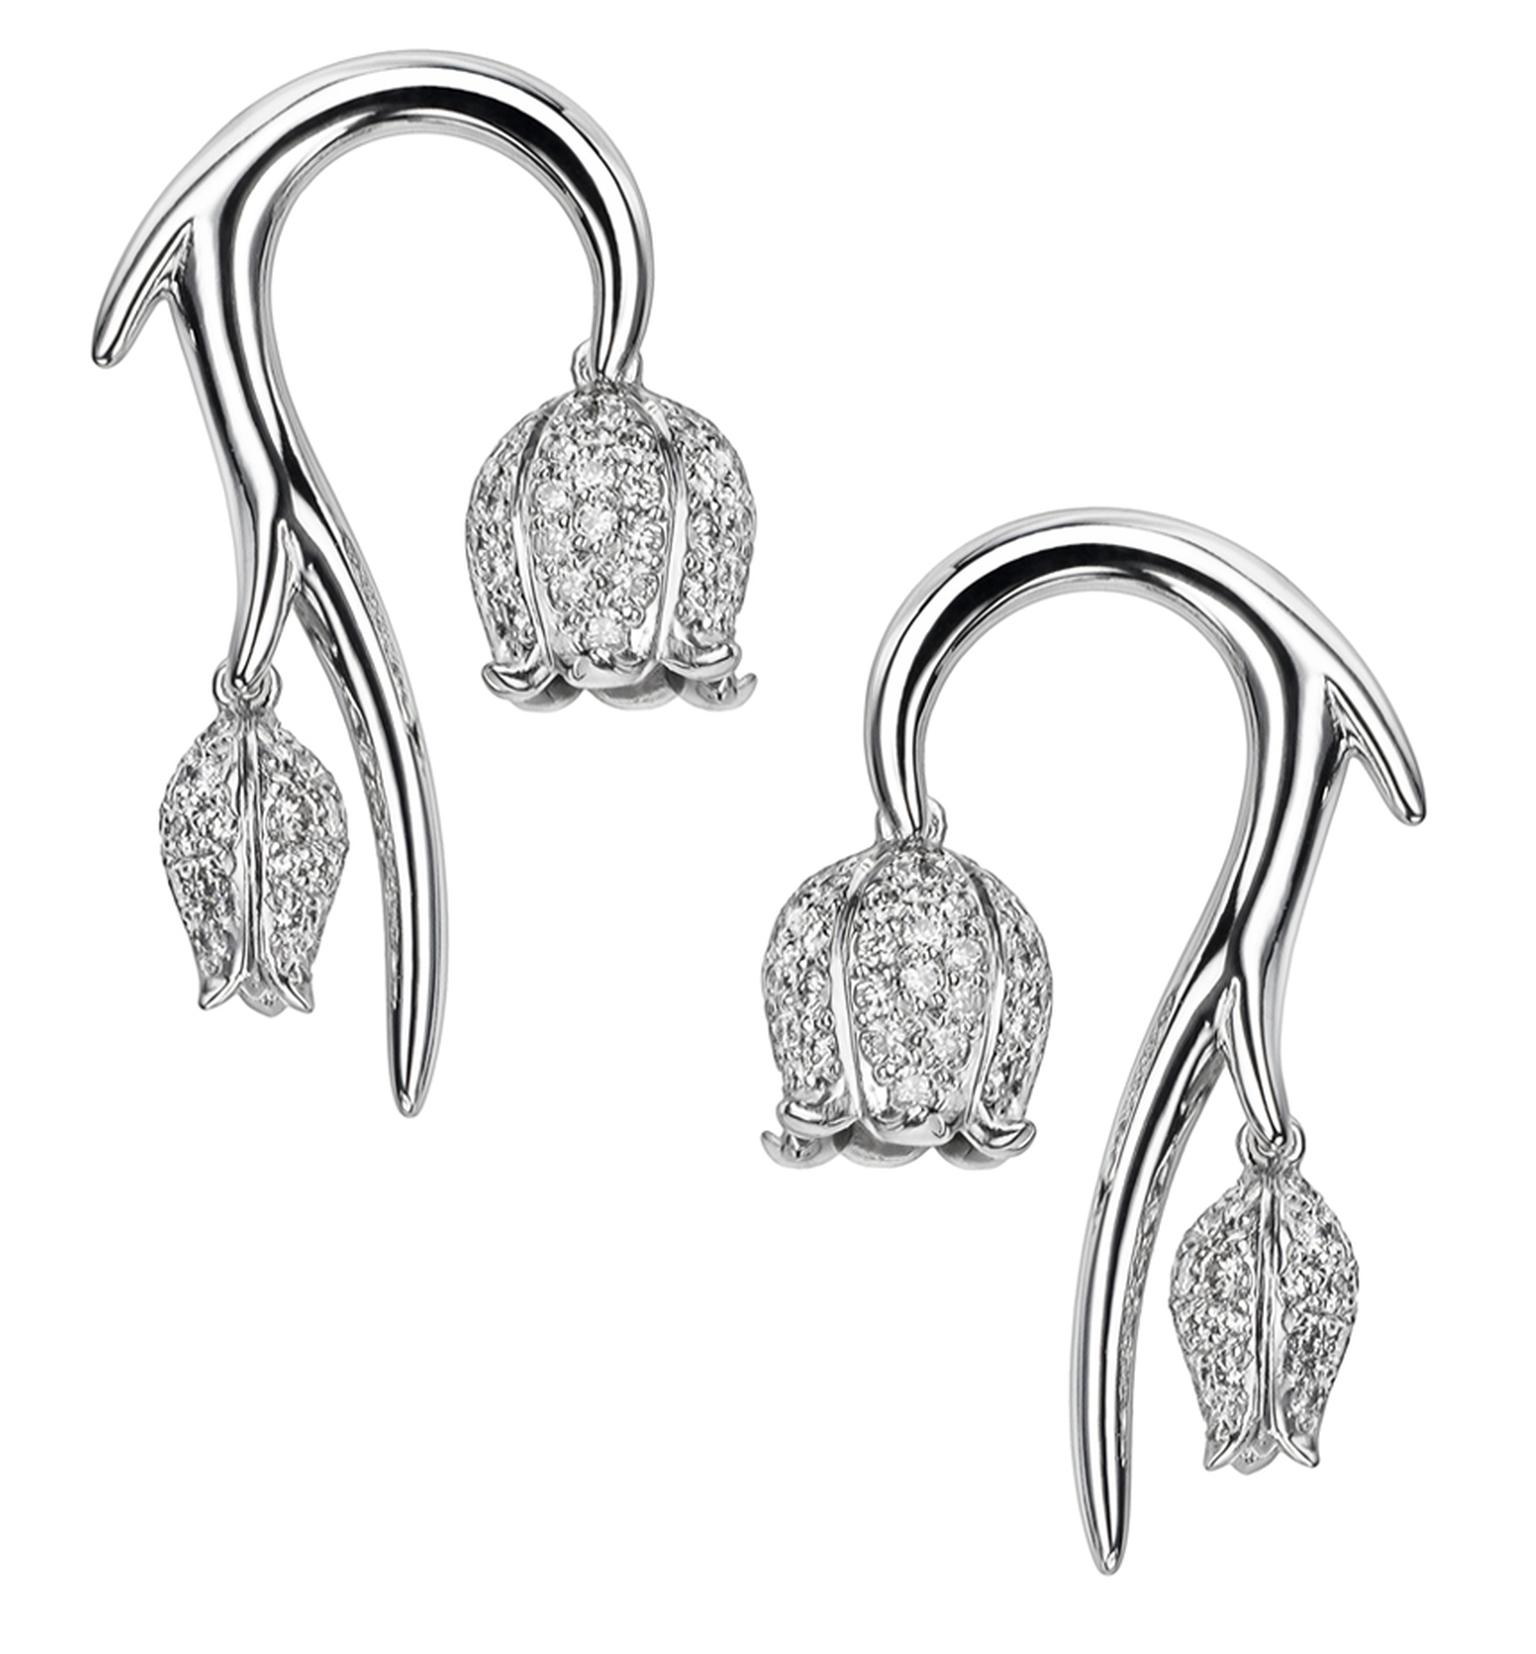 SHAUN LEANE,18CT WHITE GOLD AND WHITE DIAMOND MAYBELL STUD EARRINGS MAIN